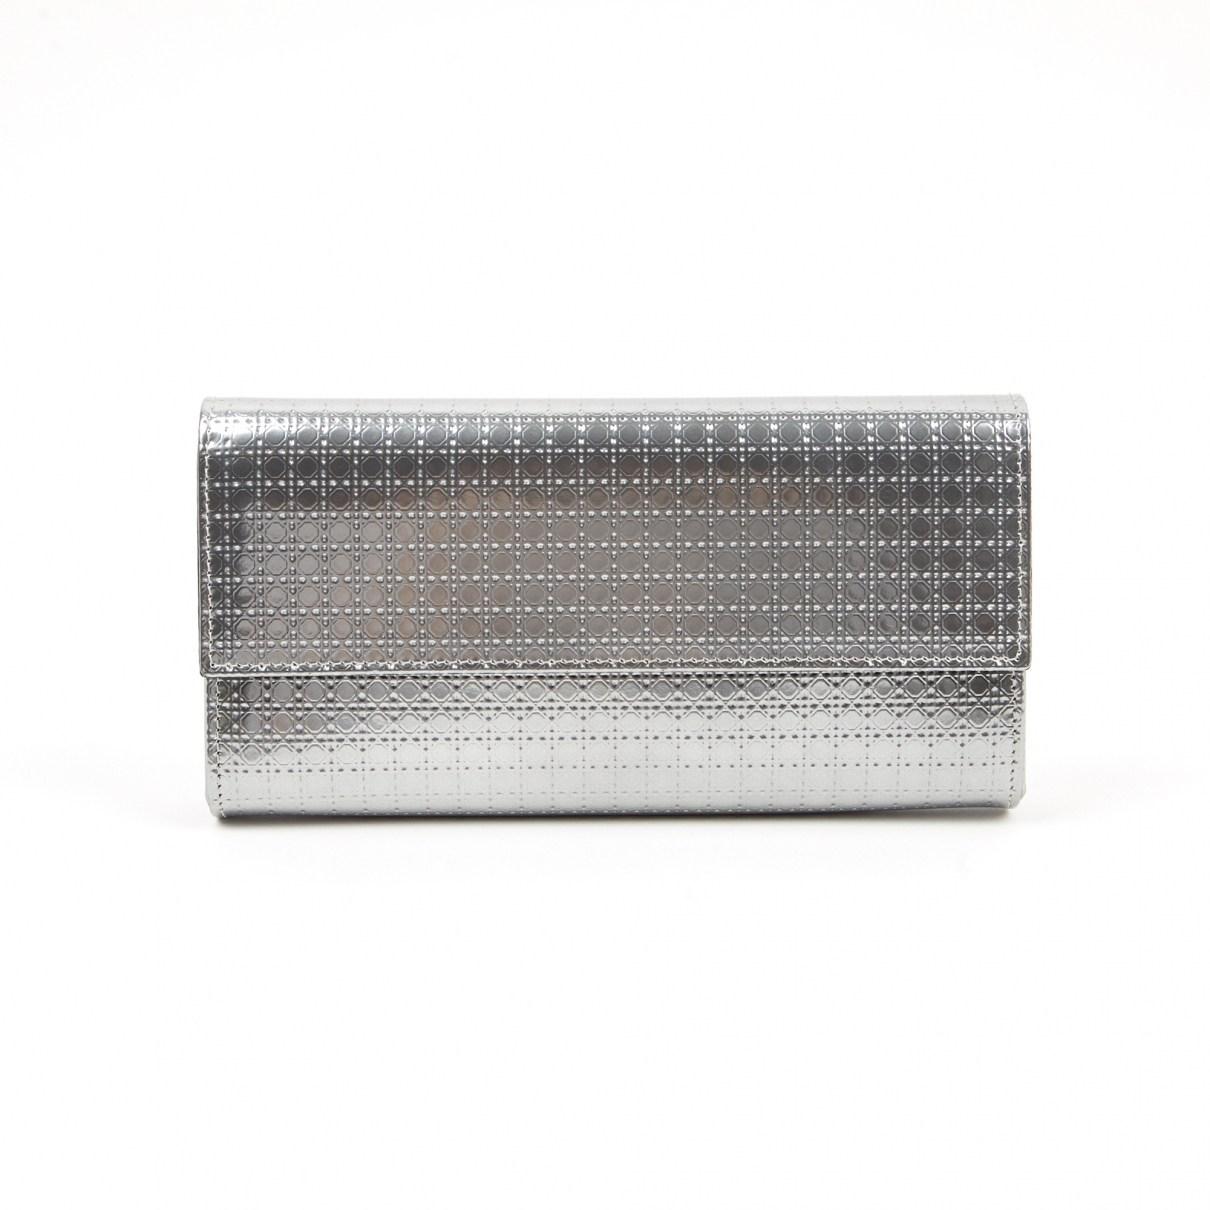 Dior Lady Dior Silver Leather wallet for Women N